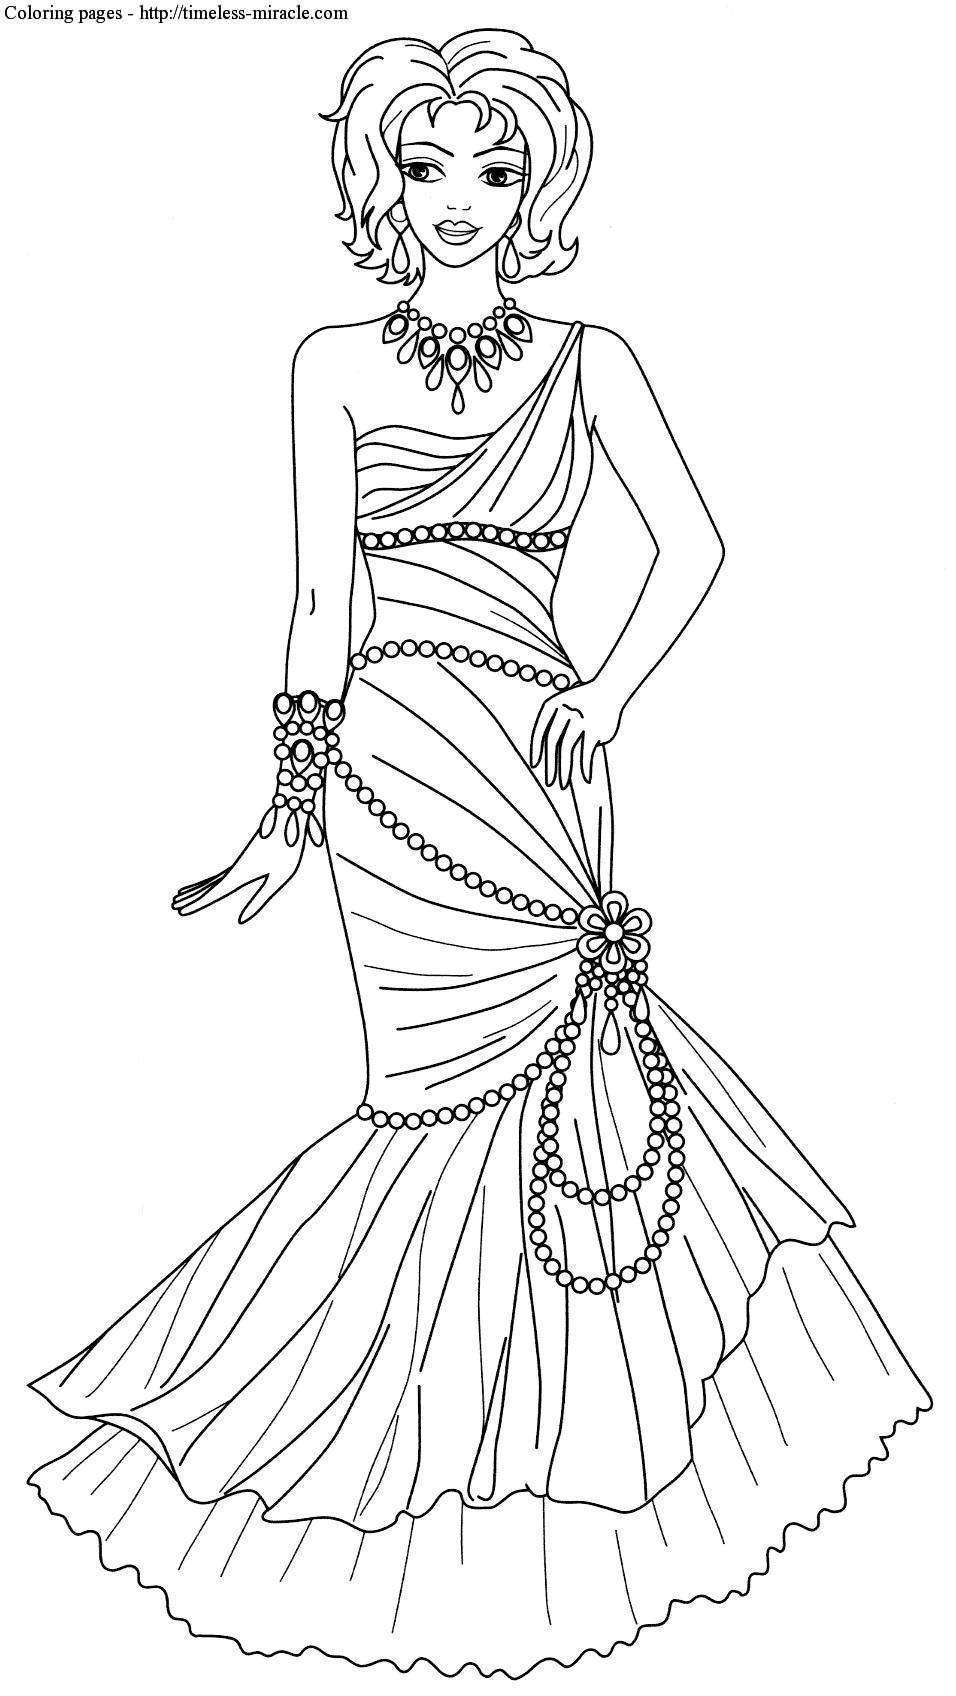 Cool Adult Coloring Pages Timeless Miracle Com